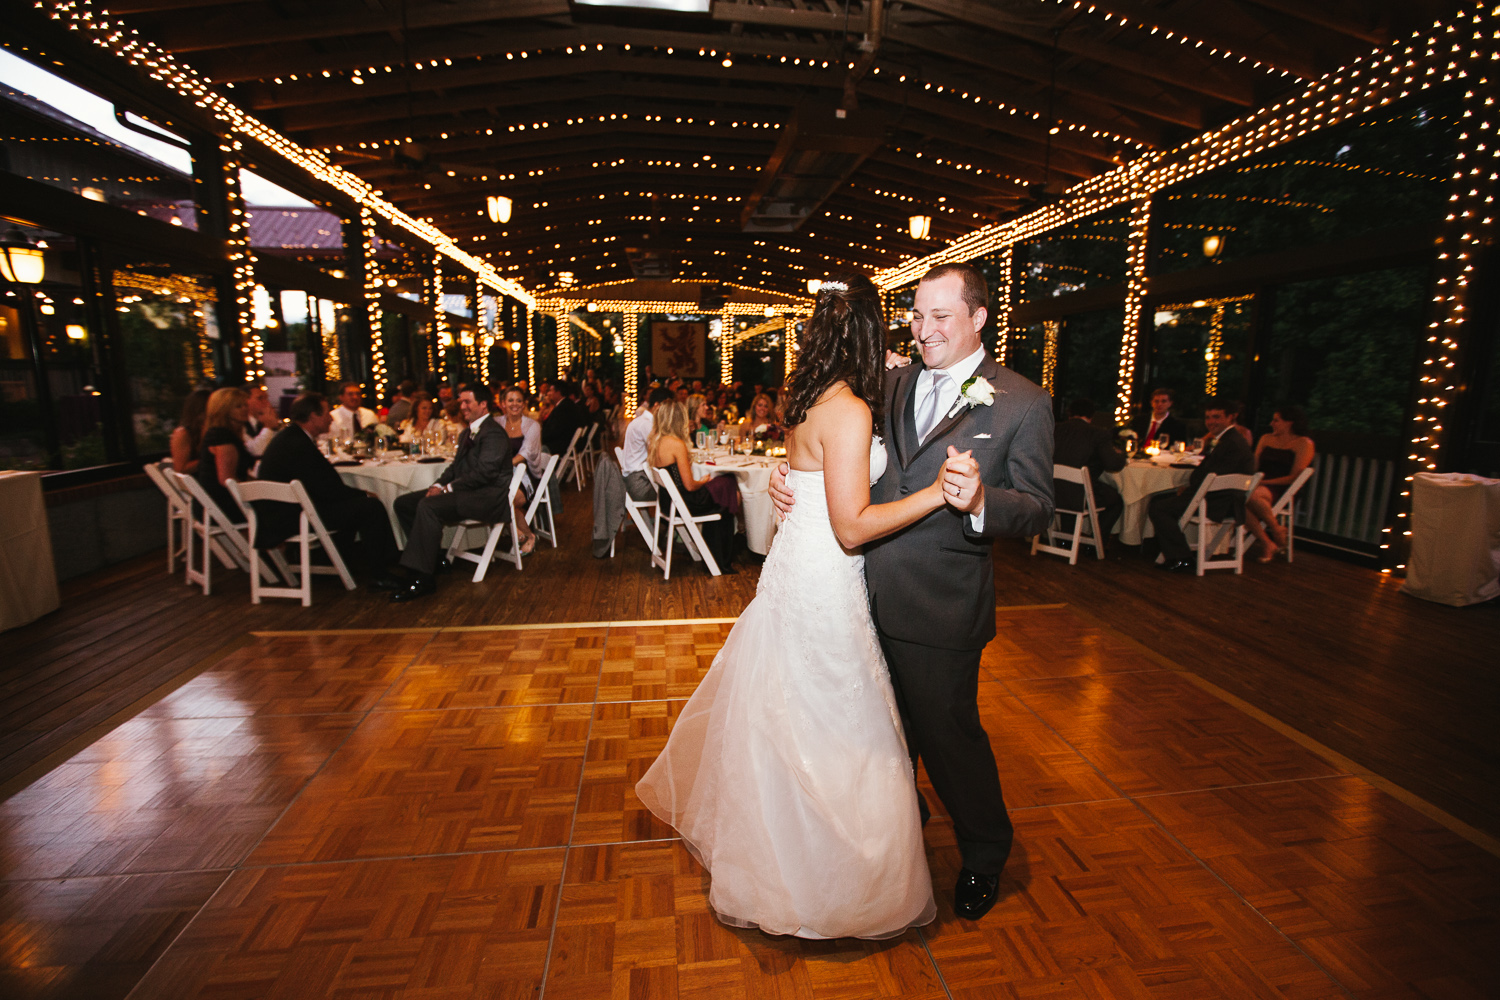 First Dance, Lioncrest Veranda